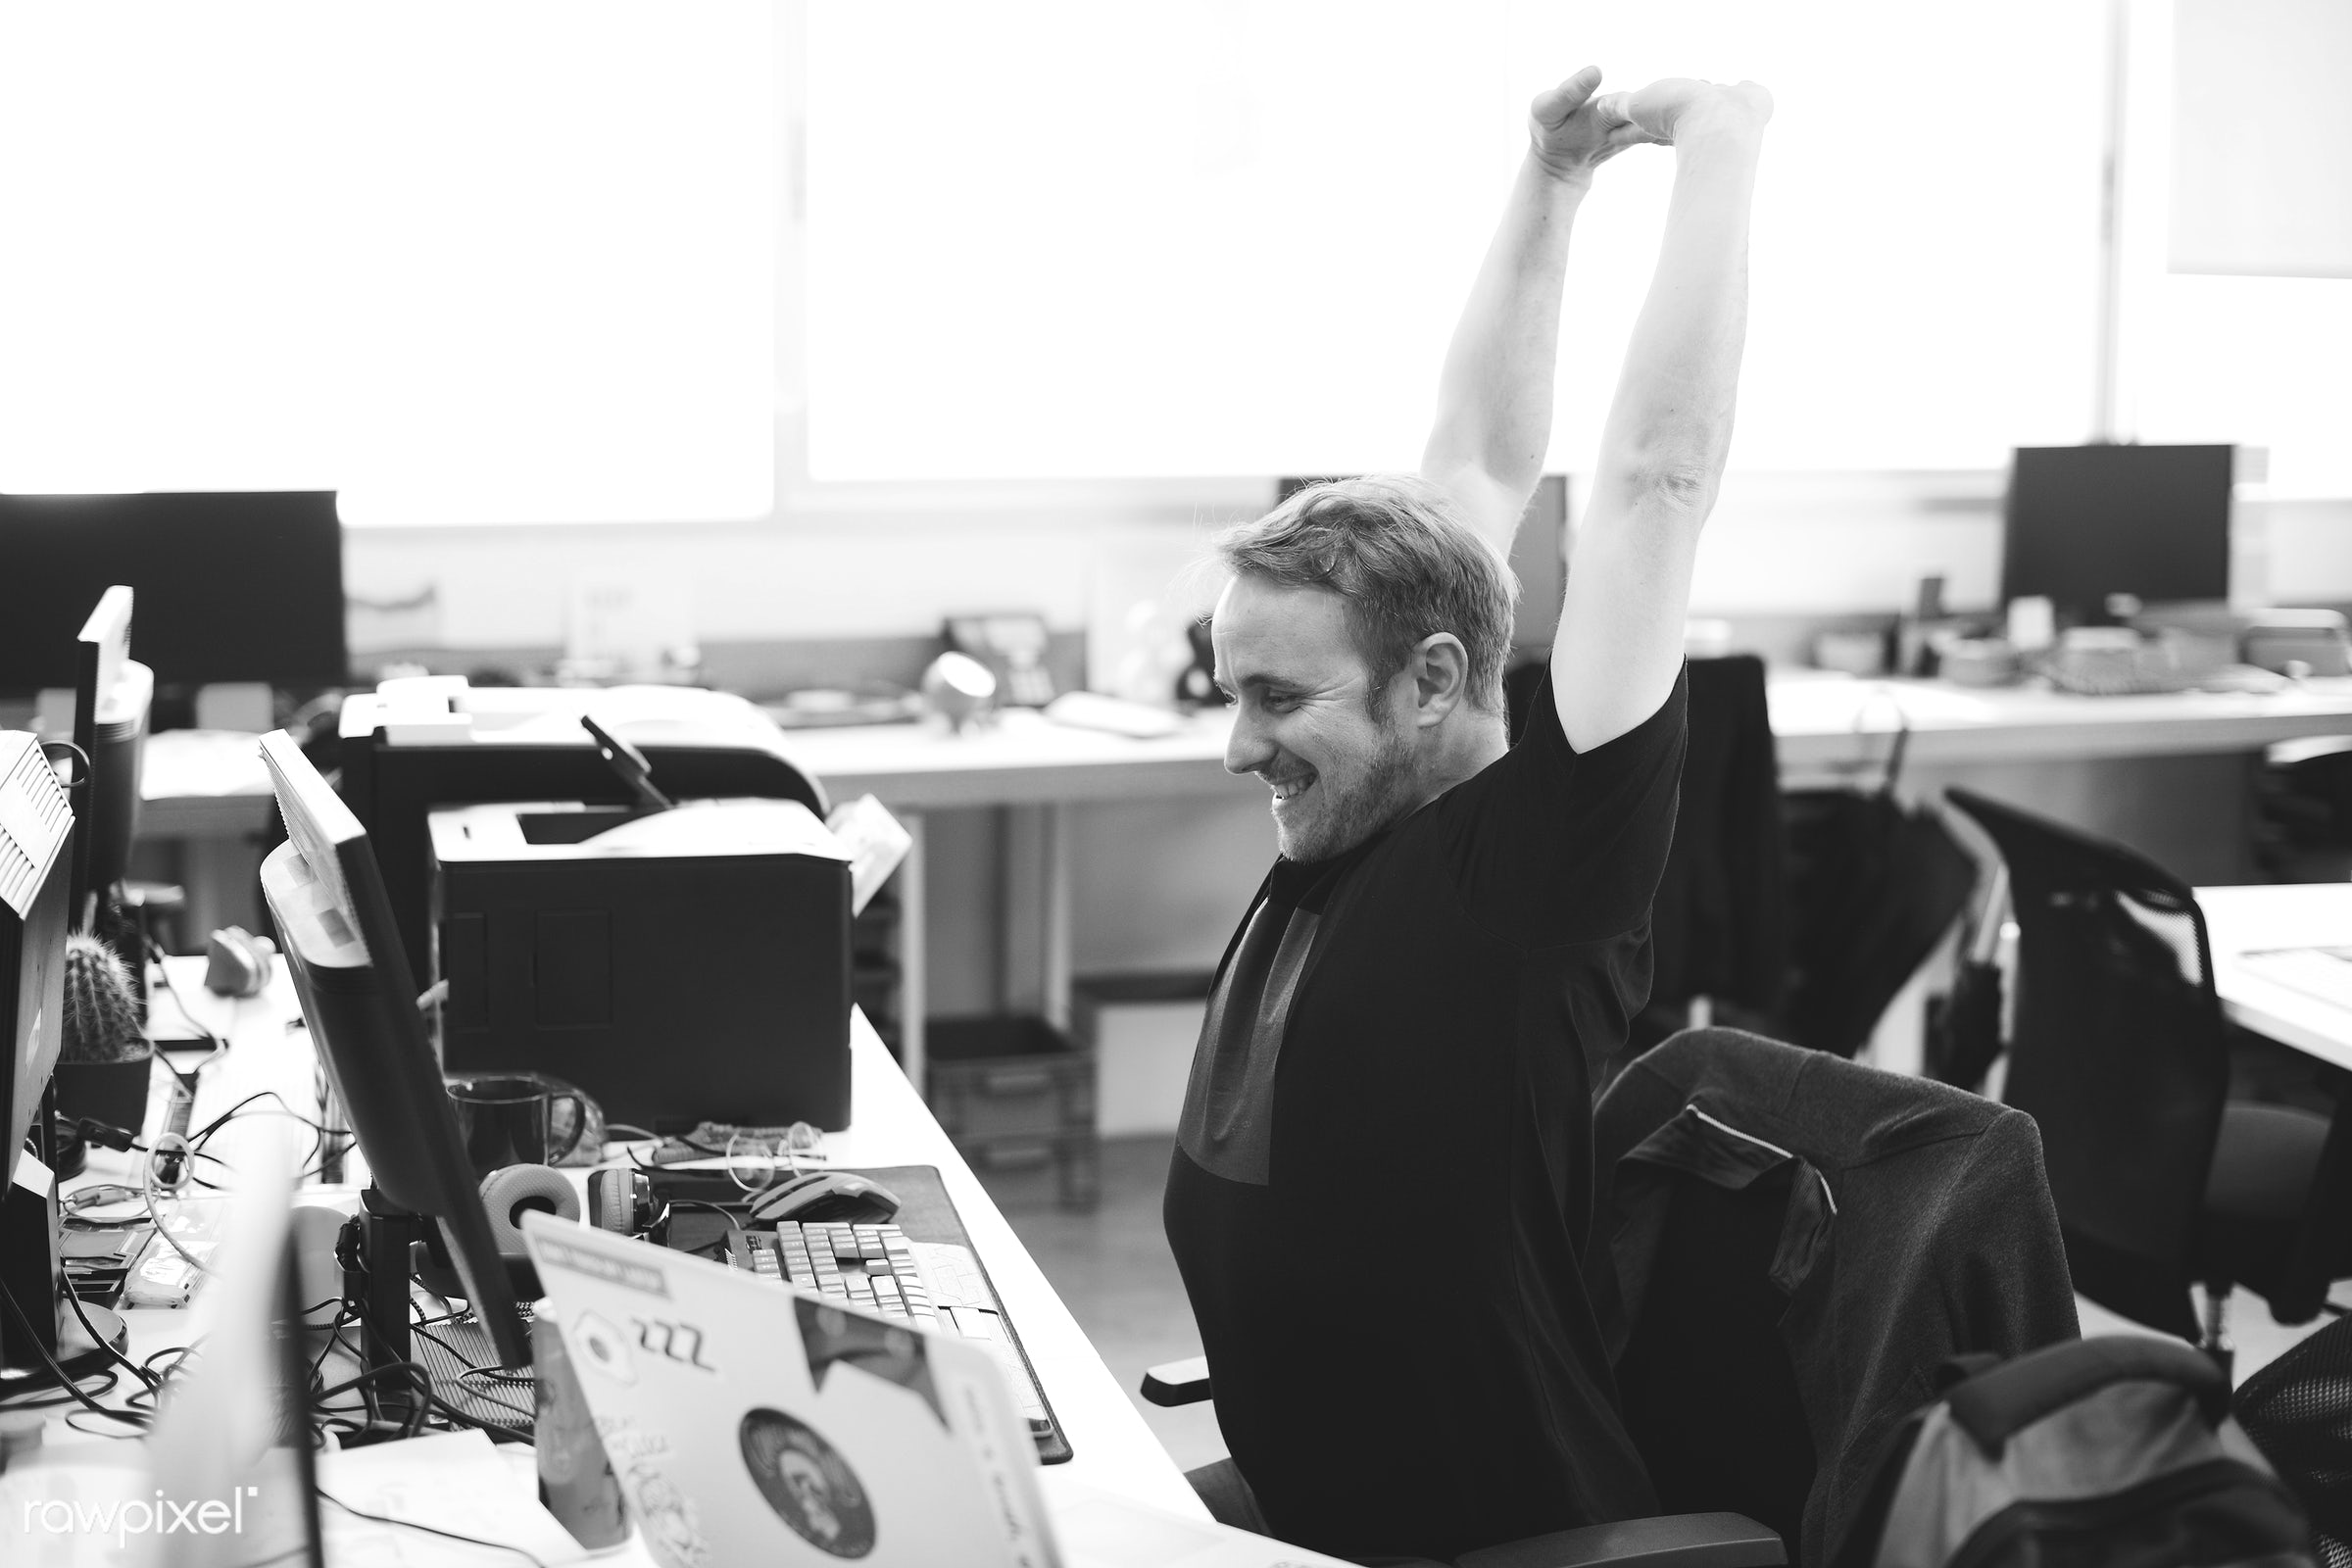 Man stretching arms during break time at office - break, business, career, cc0, communication, company, computer, connection...